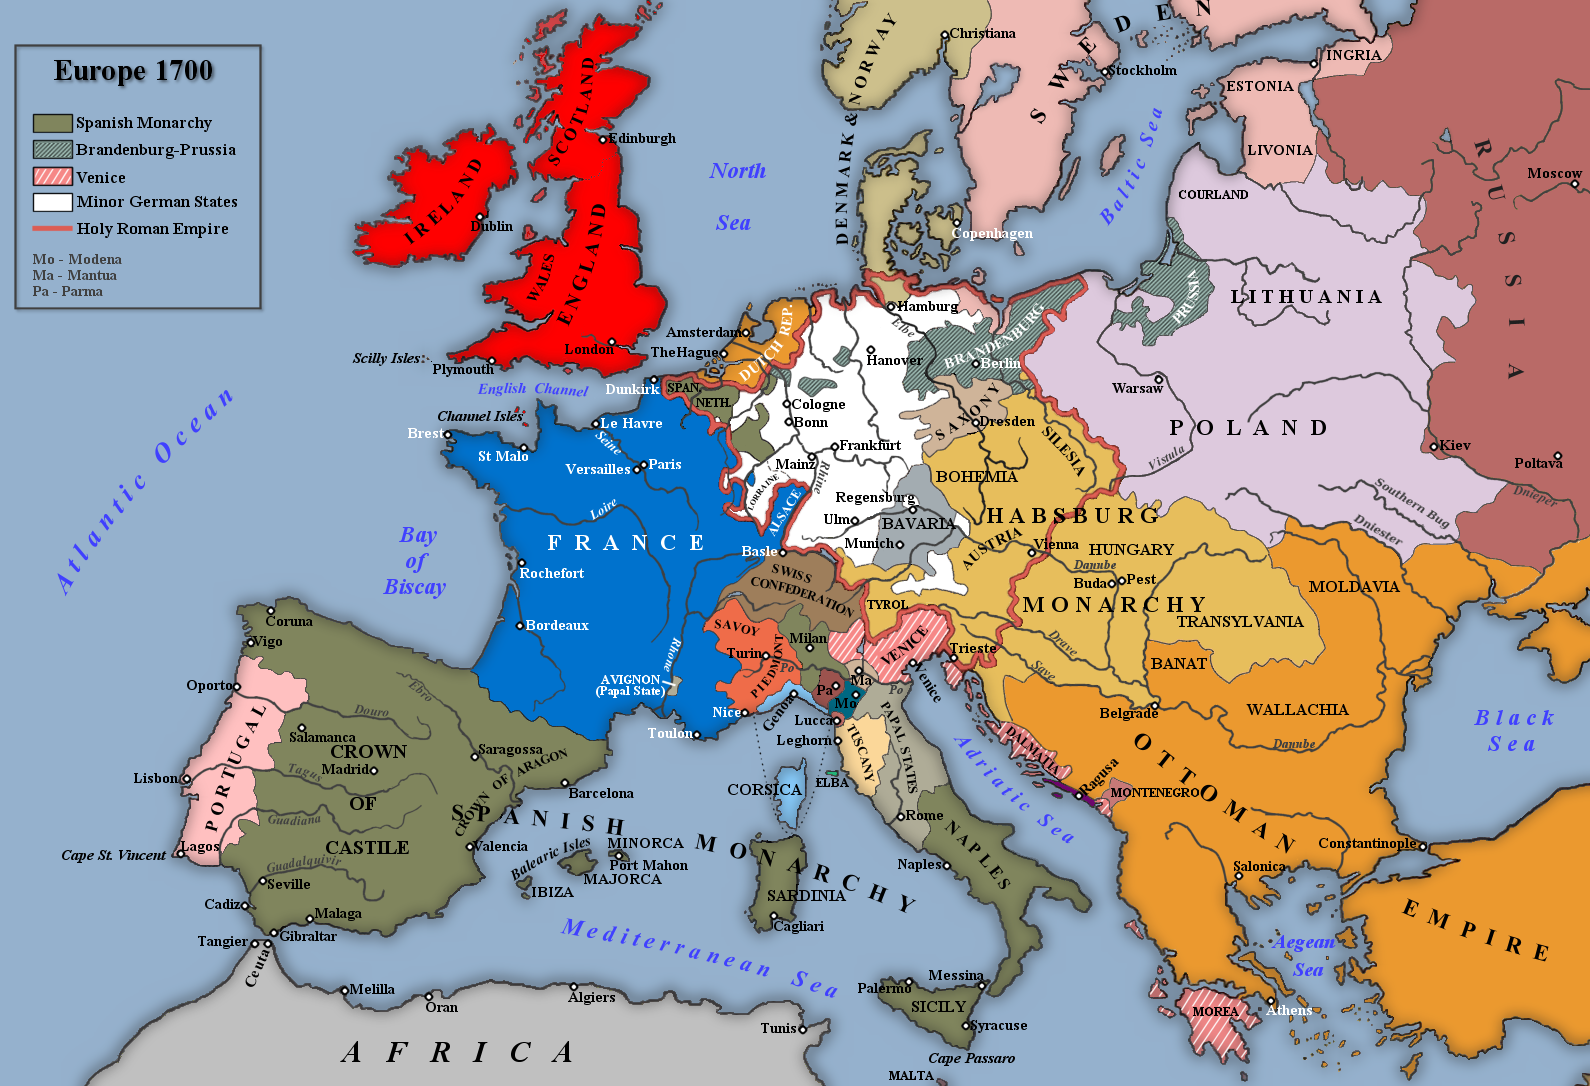 Map of Europe in 1700   Maps   Map, European history, Holy ...